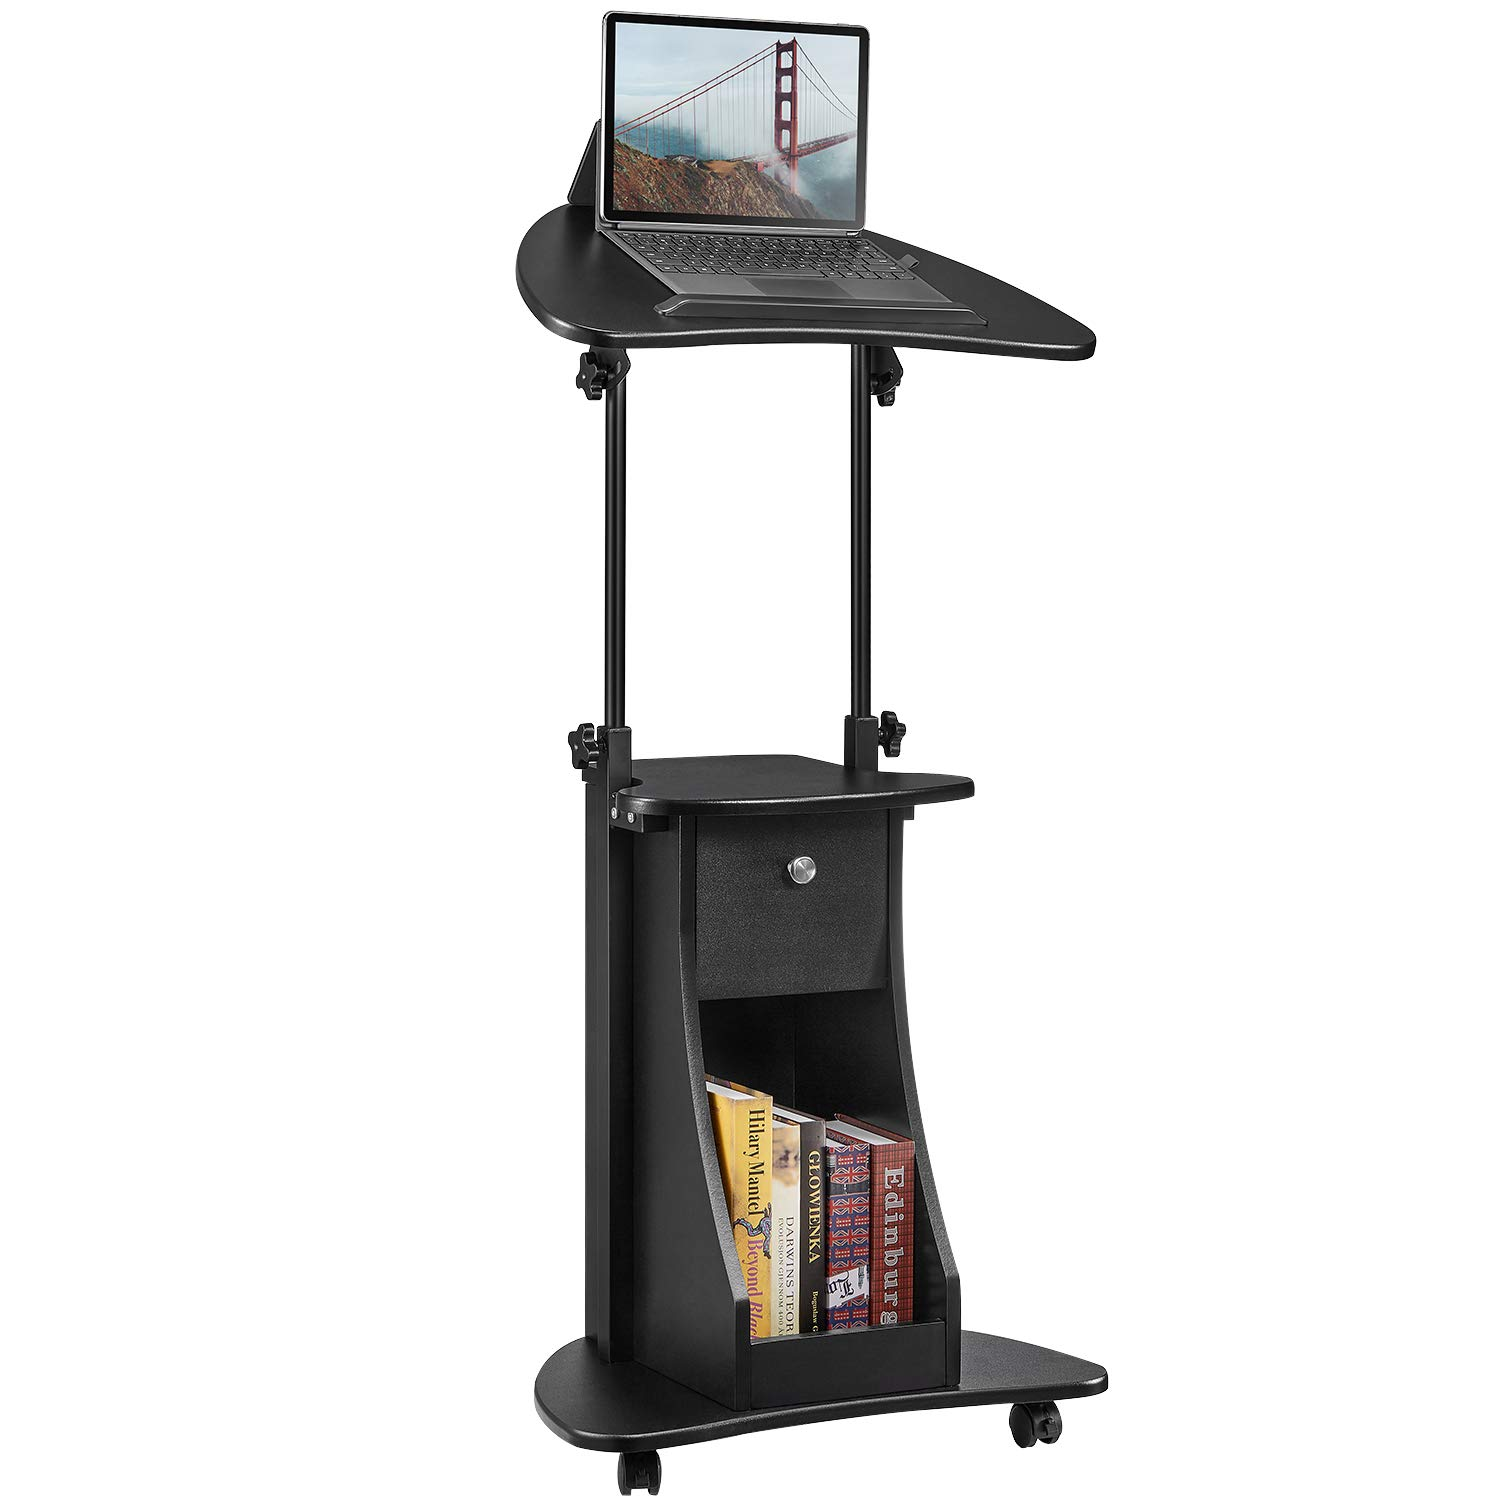 Kealive Adjustable Laptop Cart Sit-to-Stand with Rotatable Desktop, Heavy-Duty Wood Panels and Steel Frame Rolling Podium Desk, Mobile Standing Laptop Cart with Storage, 22''L x 16''W x 46''H, Black by kealive